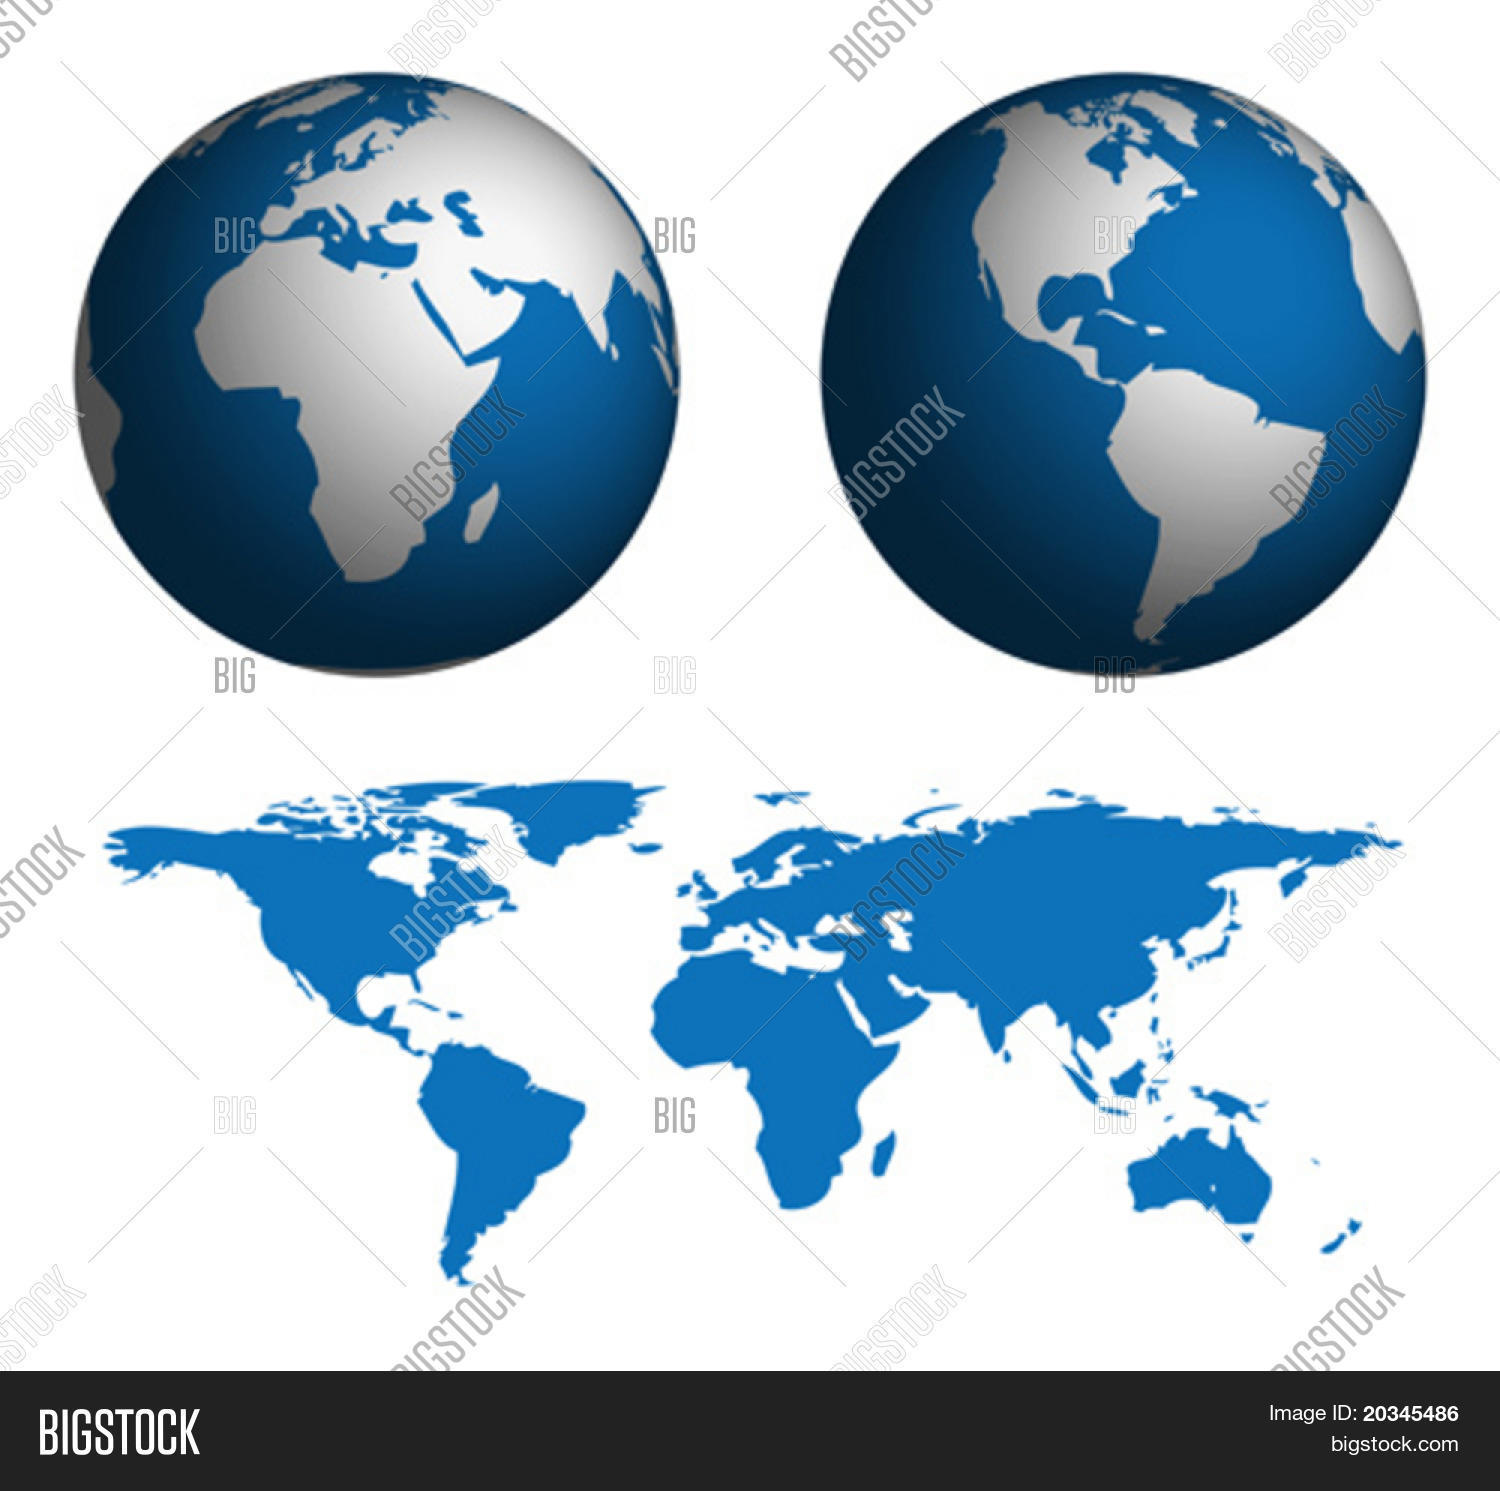 Globe map world map manually vector photo bigstock globe and map of the world map was manually traced in illustrator from public domain gumiabroncs Choice Image